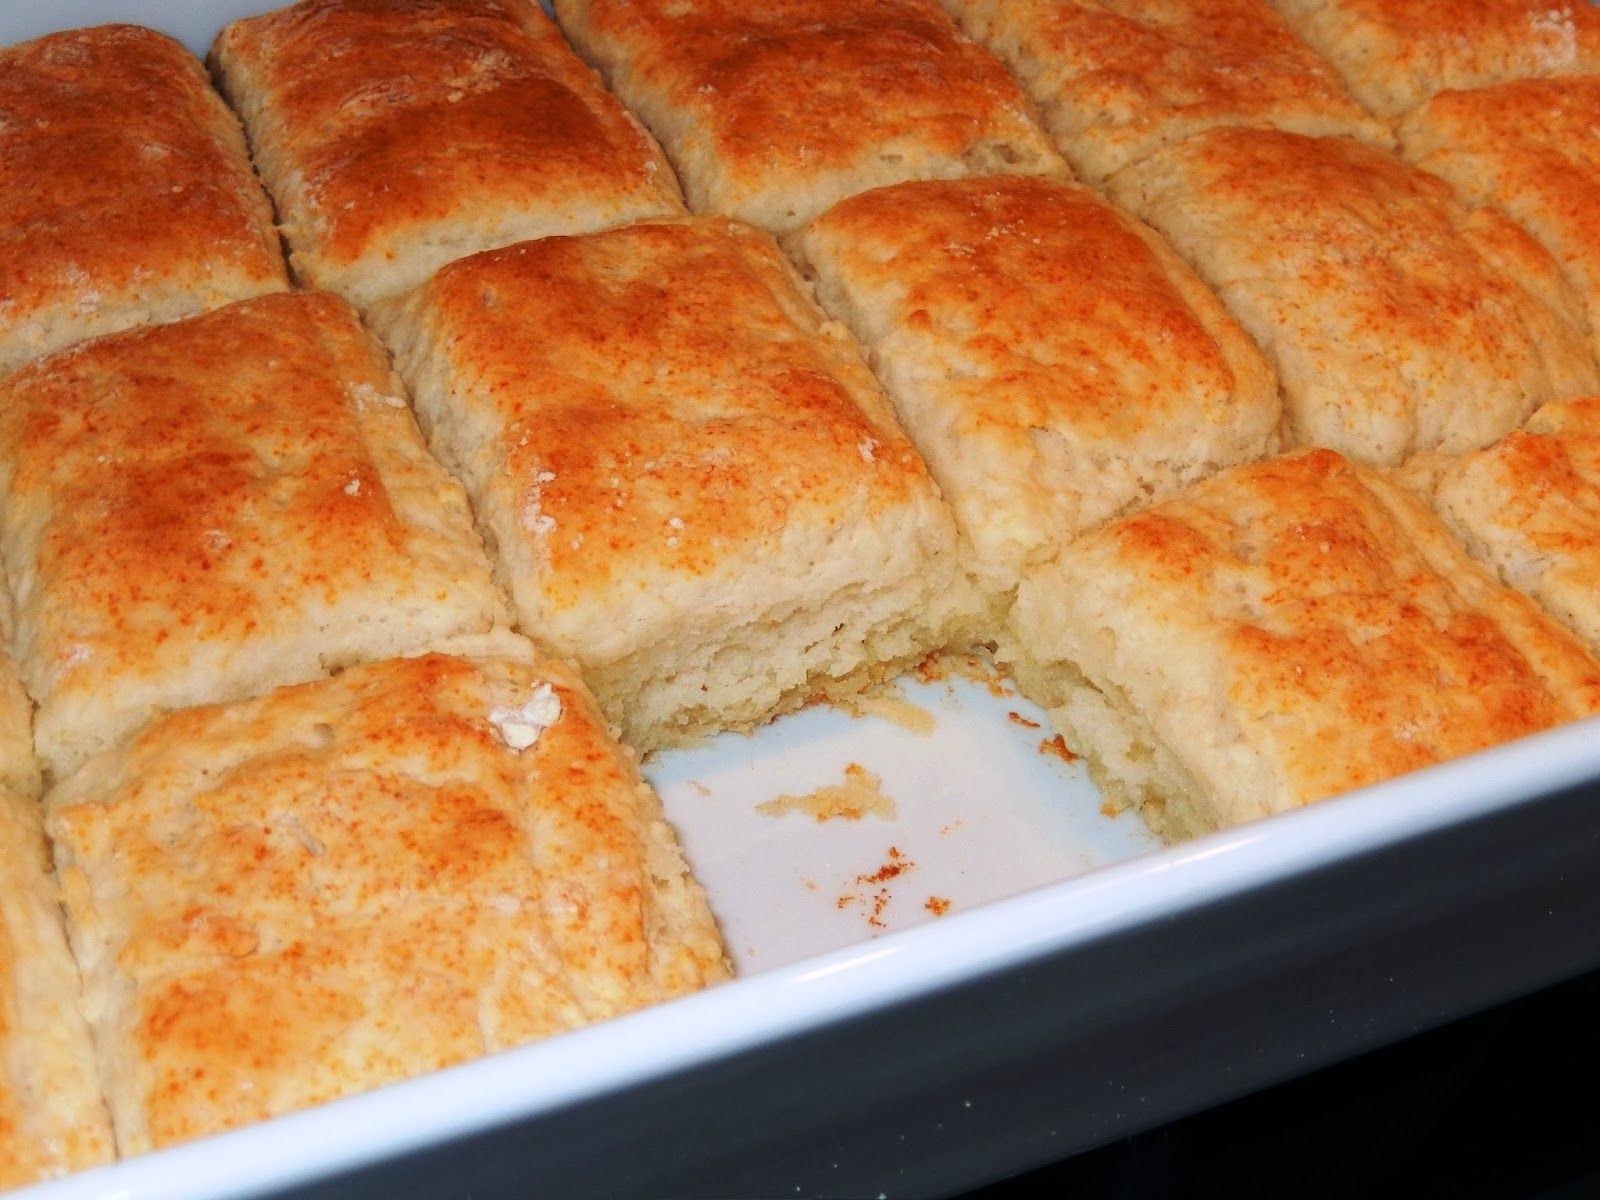 Bisquick Sour Cream 7 Up And Butter These Are Excellent So Easy And Soooo Good Recipe Is Hard To Find So I Wanted T Recipes Biscuit Recipe Biscuits